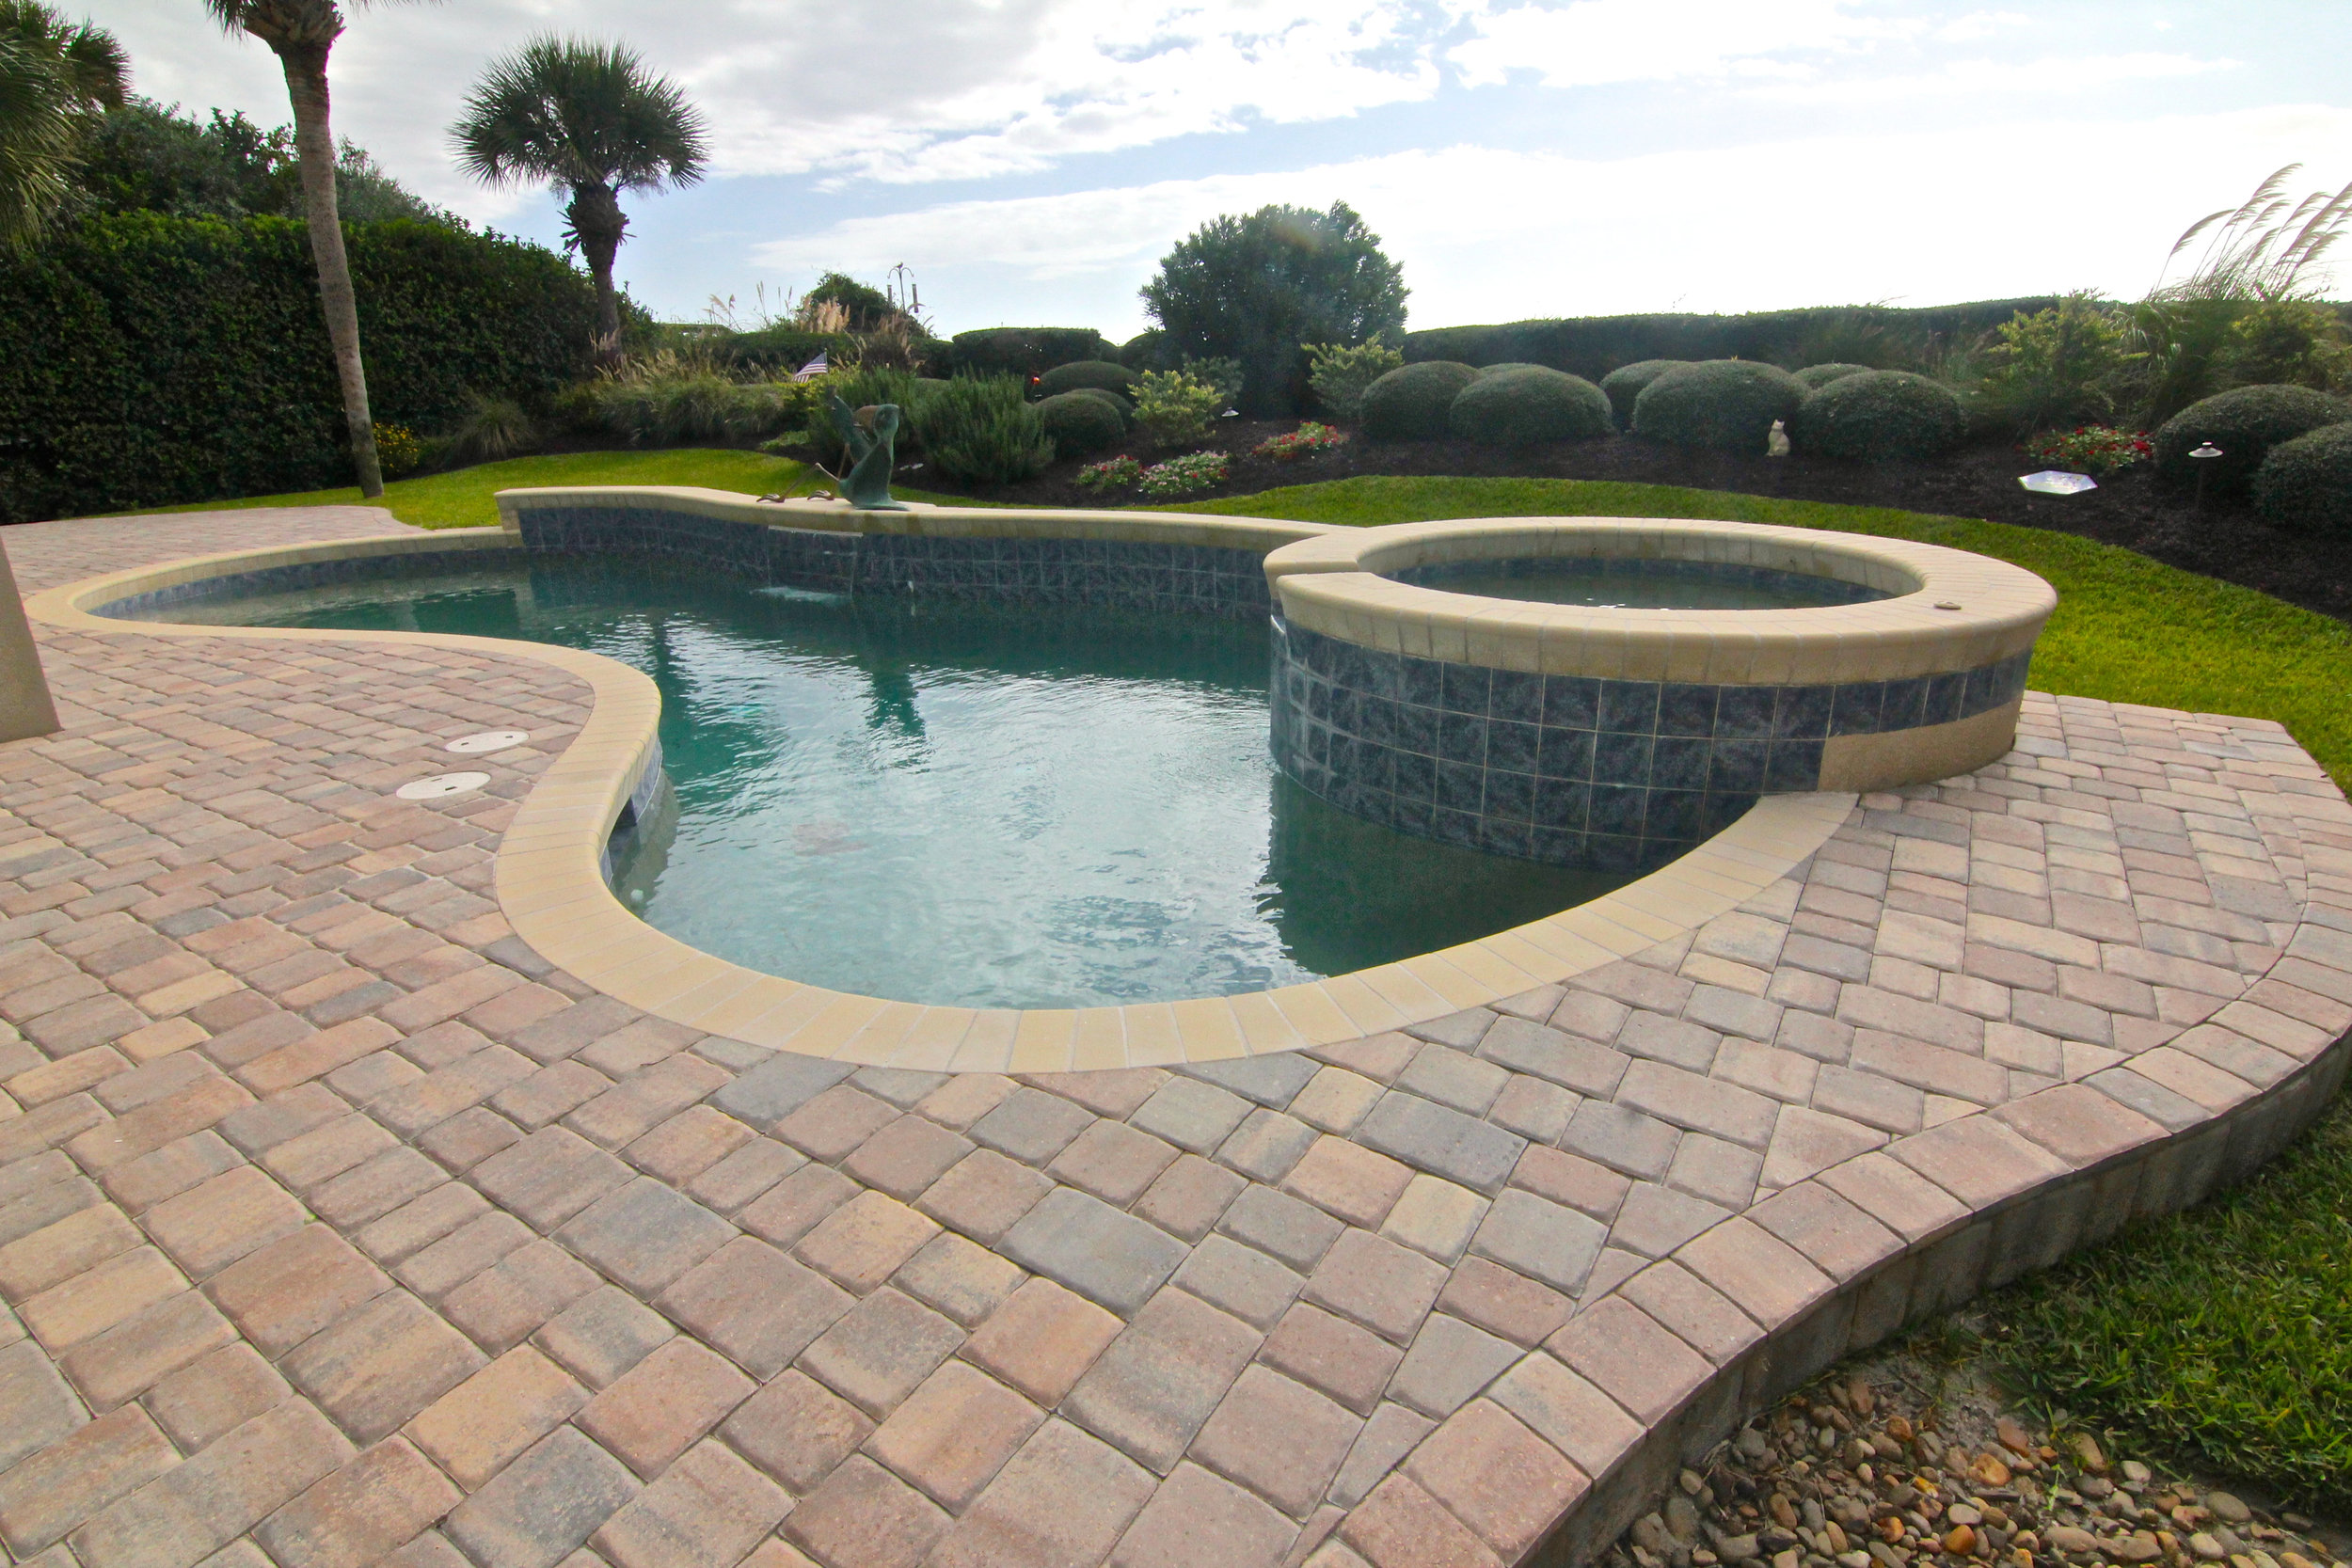 Using A Thin Paver To Overlay Your Pool Deck Is A Great Idea.  Choosing To Remodel Your Pool Deck - Gives You Plenty of Options When It Comes to Selecting The Ideal Paver Color and Texture.